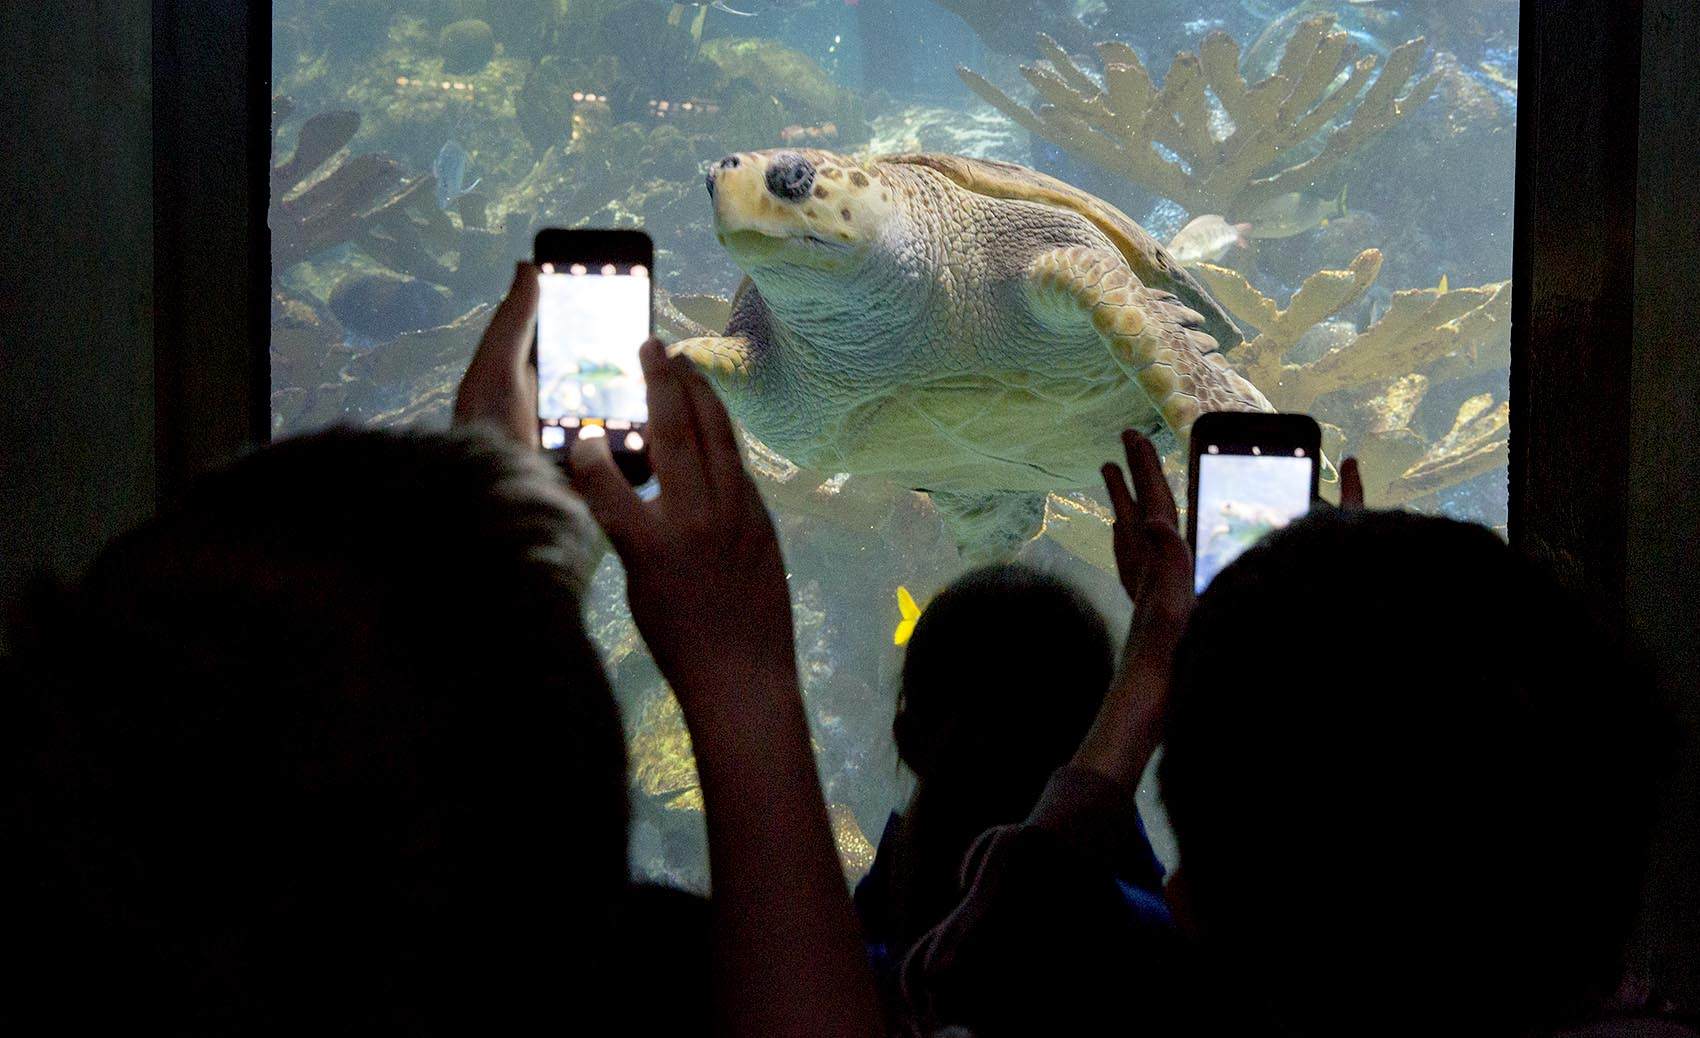 How The New England Aquarium Seeks To Urge Visitors To Act